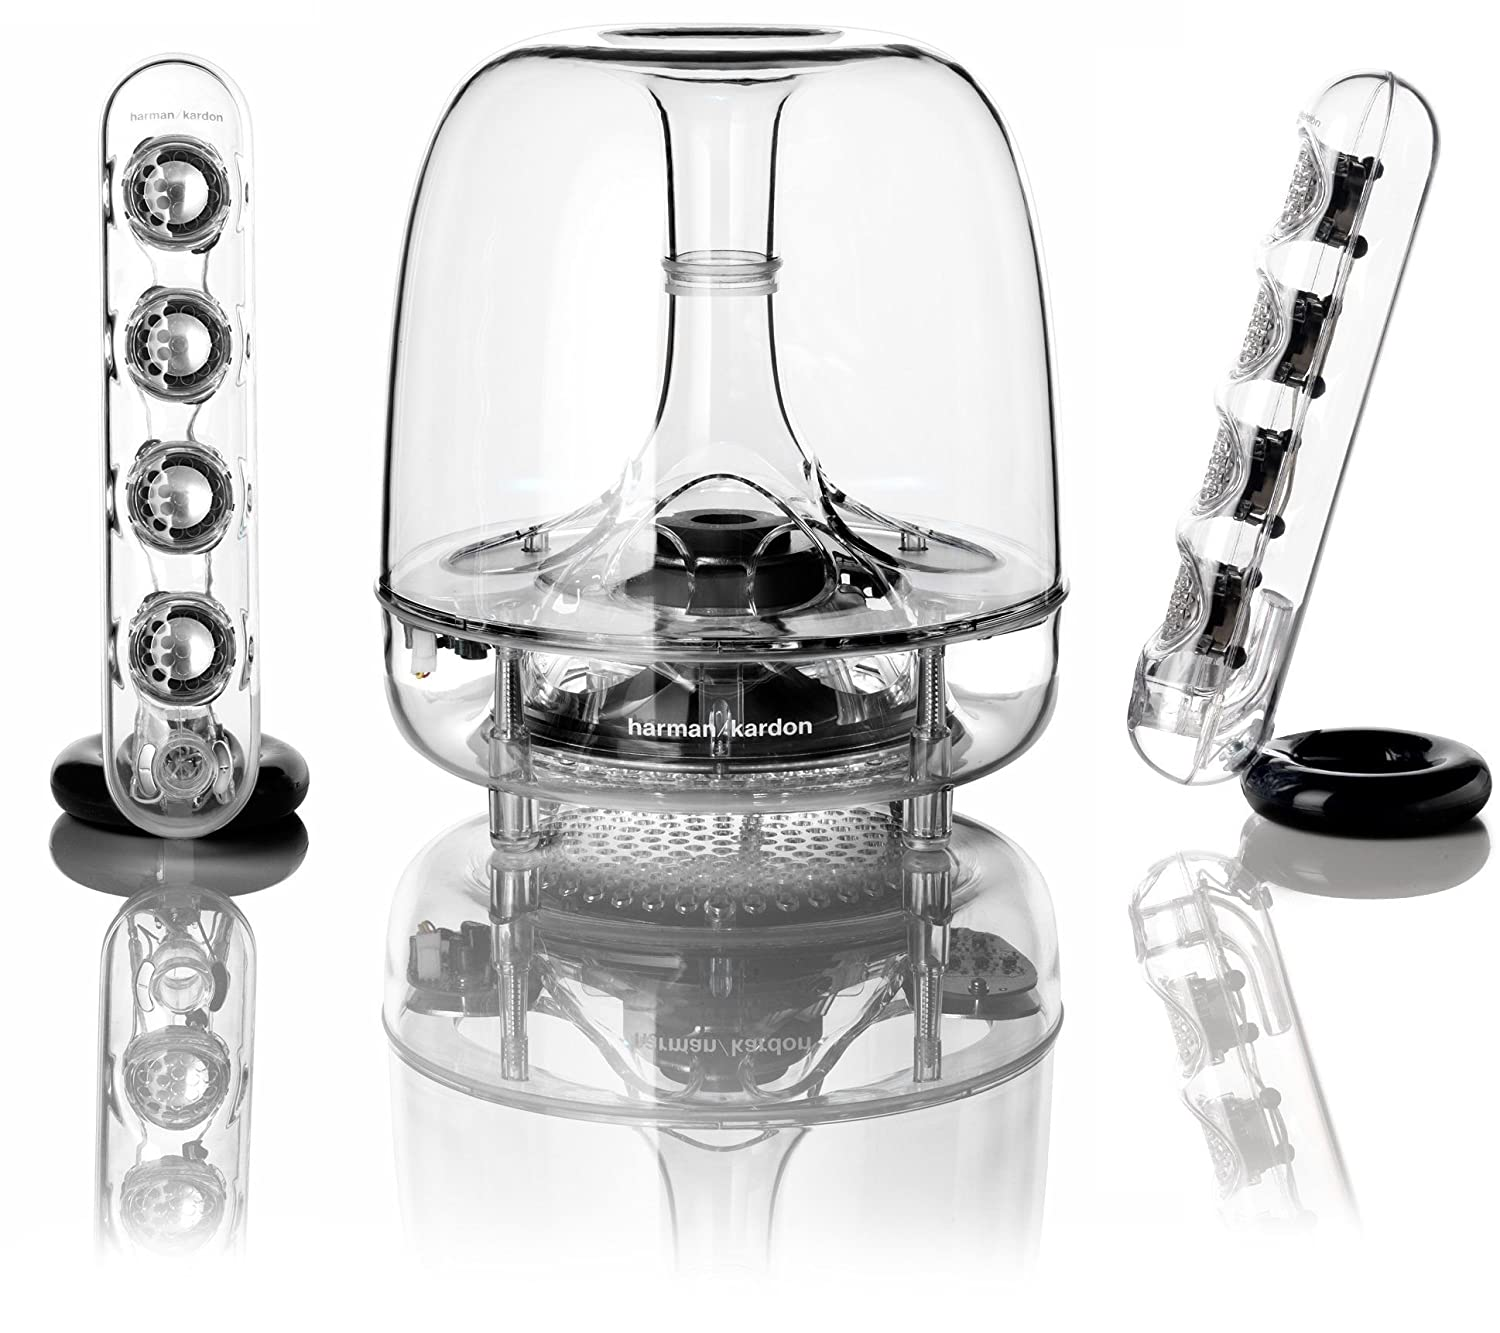 Harman Kardon Soundsticks III 2.1 Channel Multimedia Speaker Black Friday Deals 2019